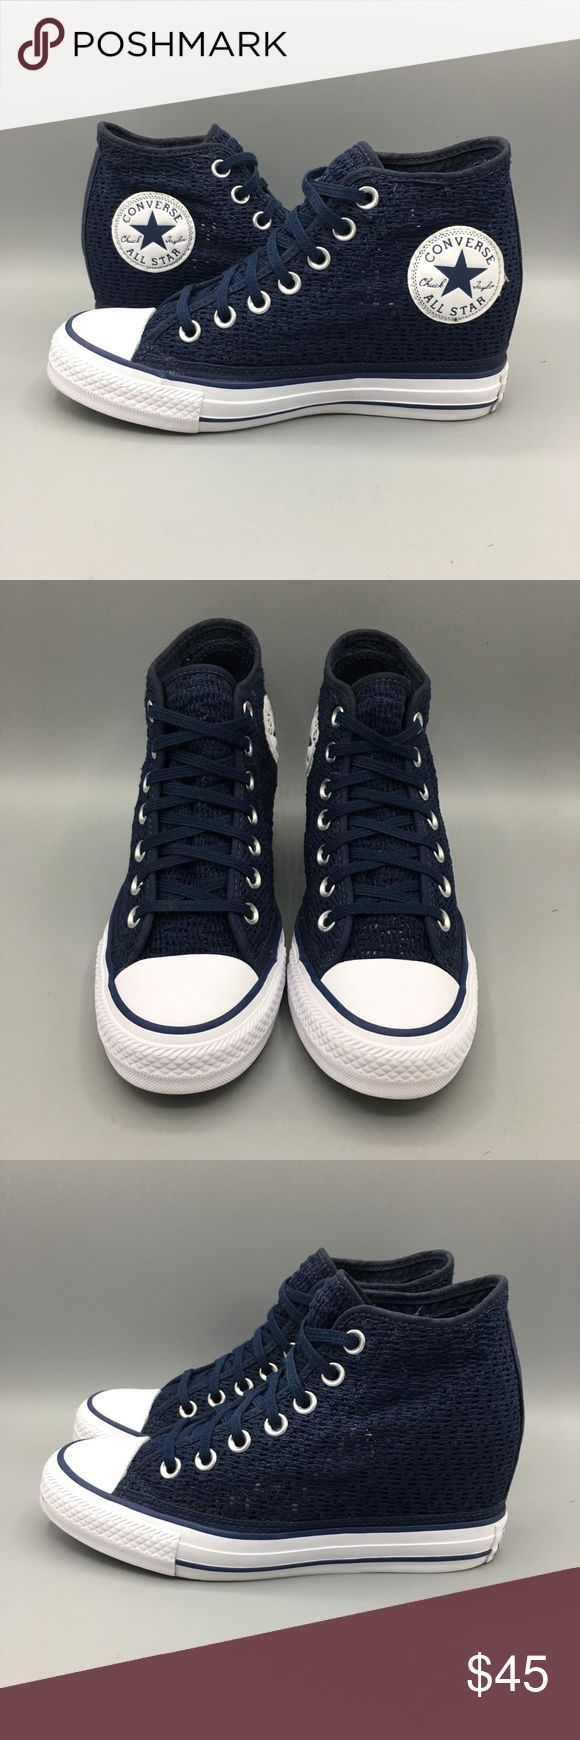 Converse lux mid dress blue wedge sneakers Converse 552696c lux mid dress blue w... Converse lux mid dress blue wedge sneakers Converse 552696c lux mid dress blue w... Sneakers 👟